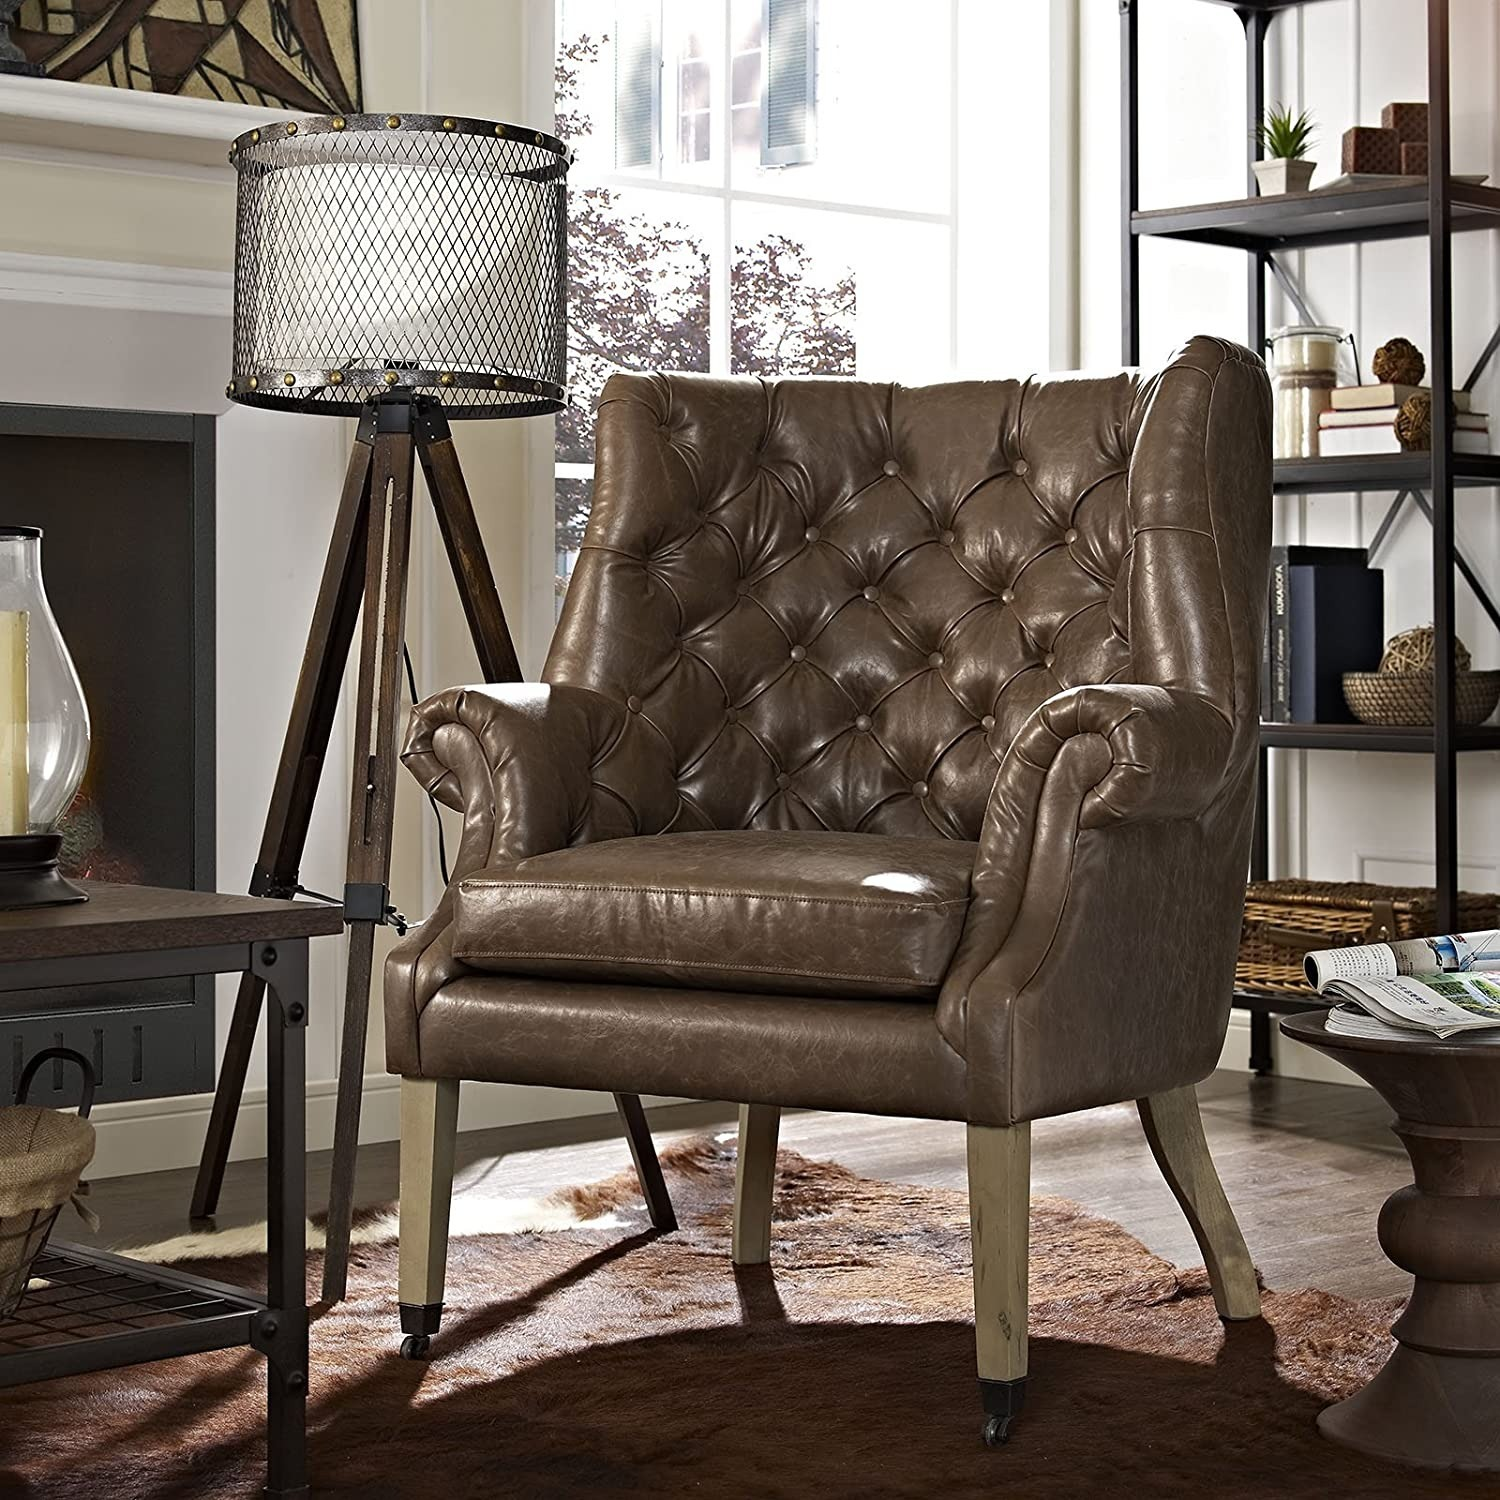 Accent Chair In Brown Vinyl Upholstery Finish - image-3